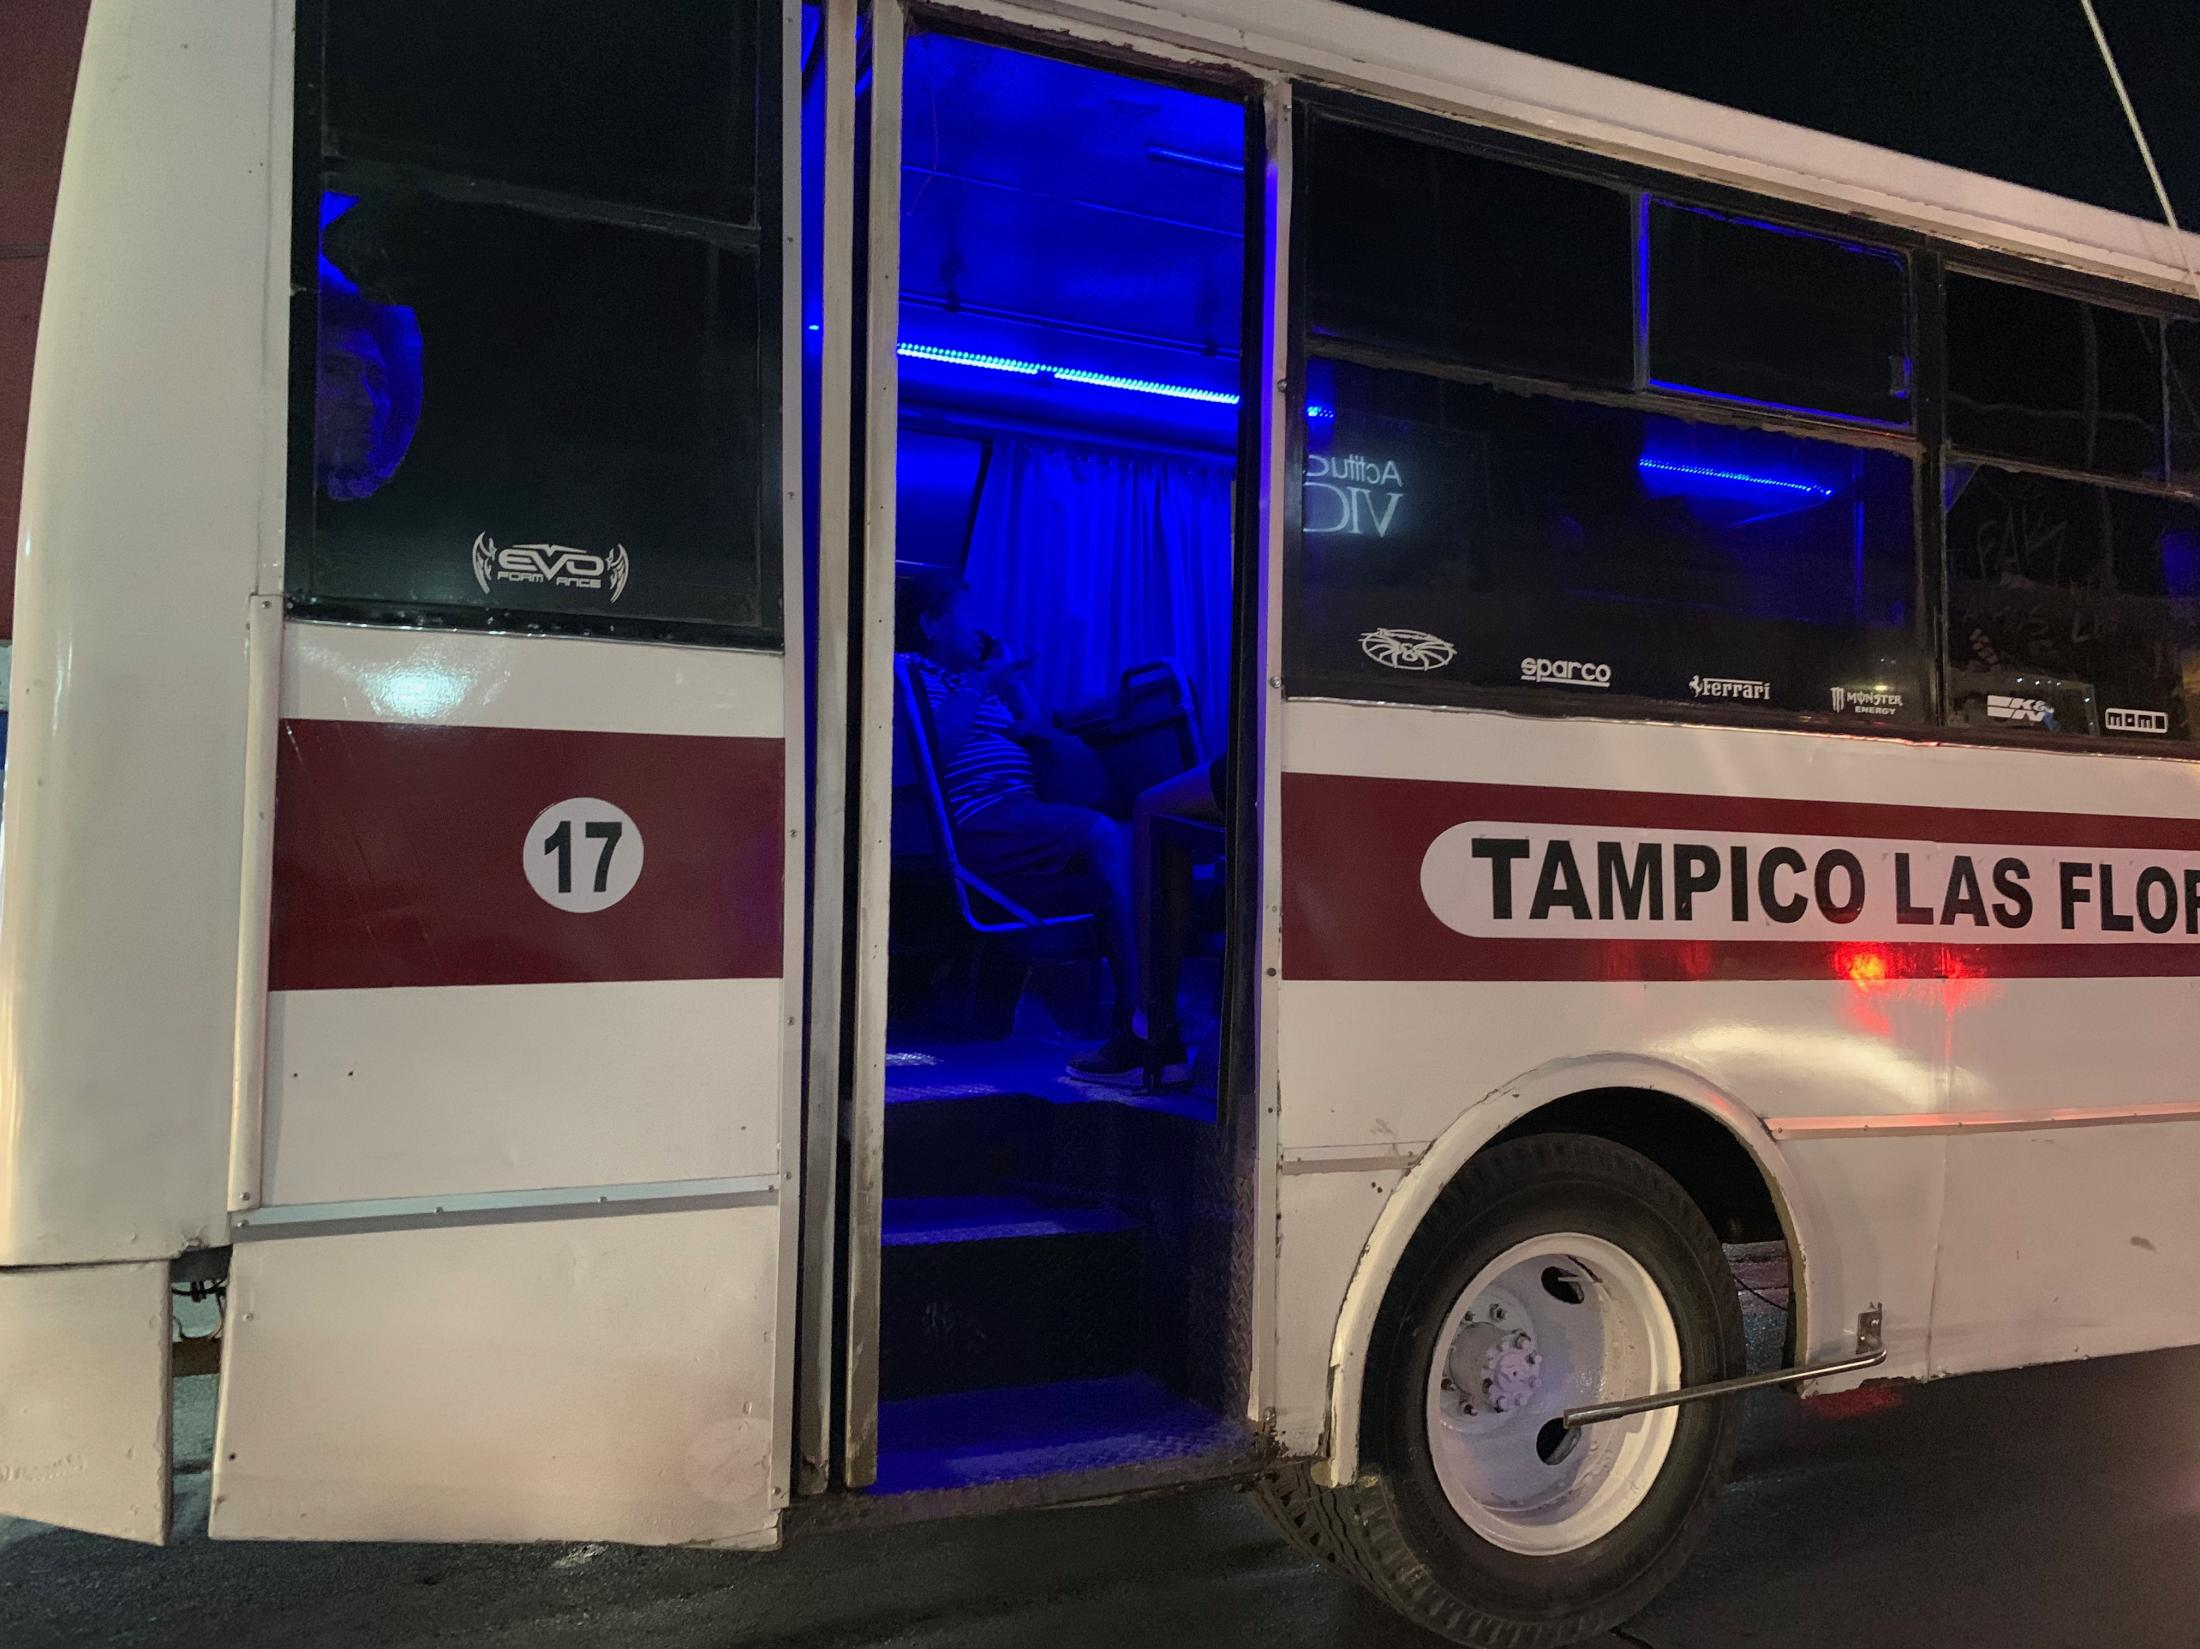 Ciudad Madero Tamaulipas,México. 2019. A lady talks on the phone and a man looks outside his window illuminated by the blue neon lights in interior of a public bus at night. This is a common sight in many Mexican cities. I was driving from the beach to my house.